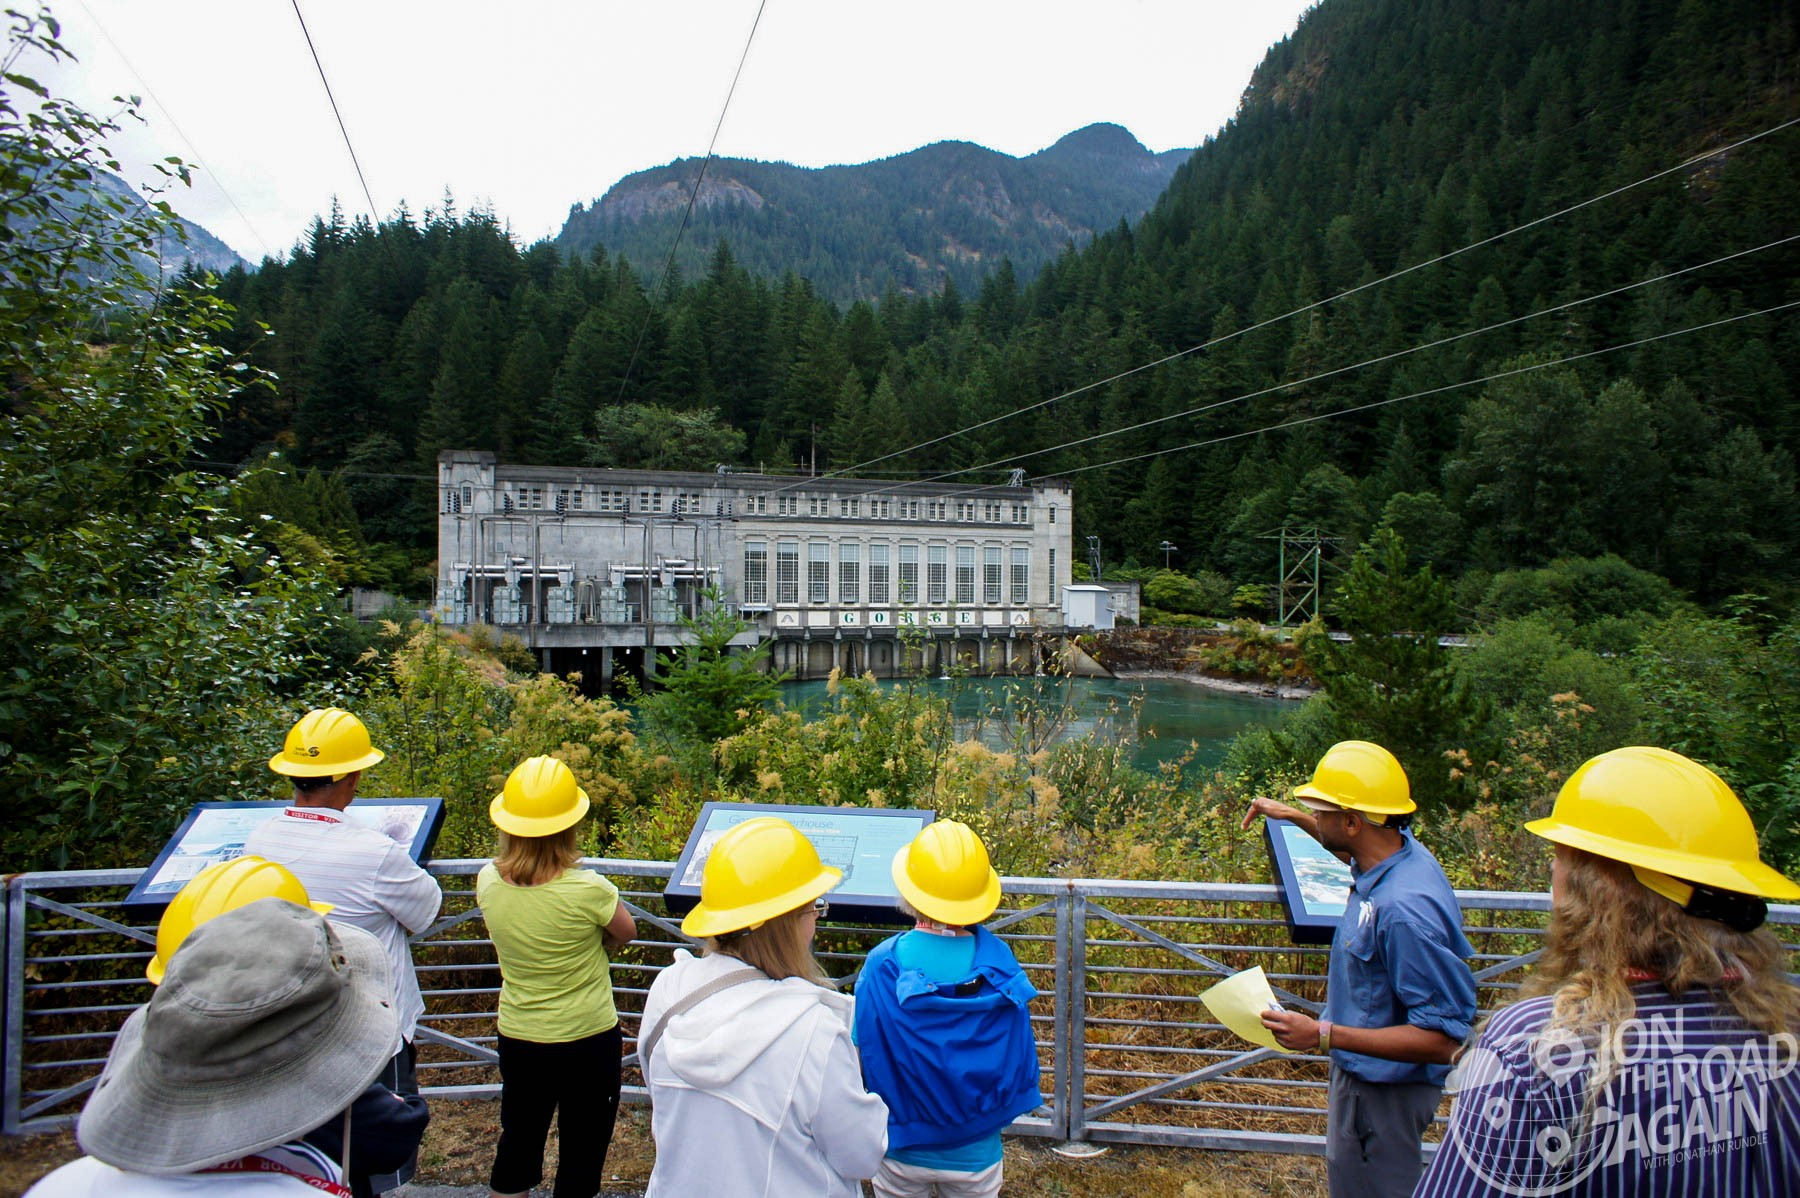 Tour Group at Gorge Powerhouse